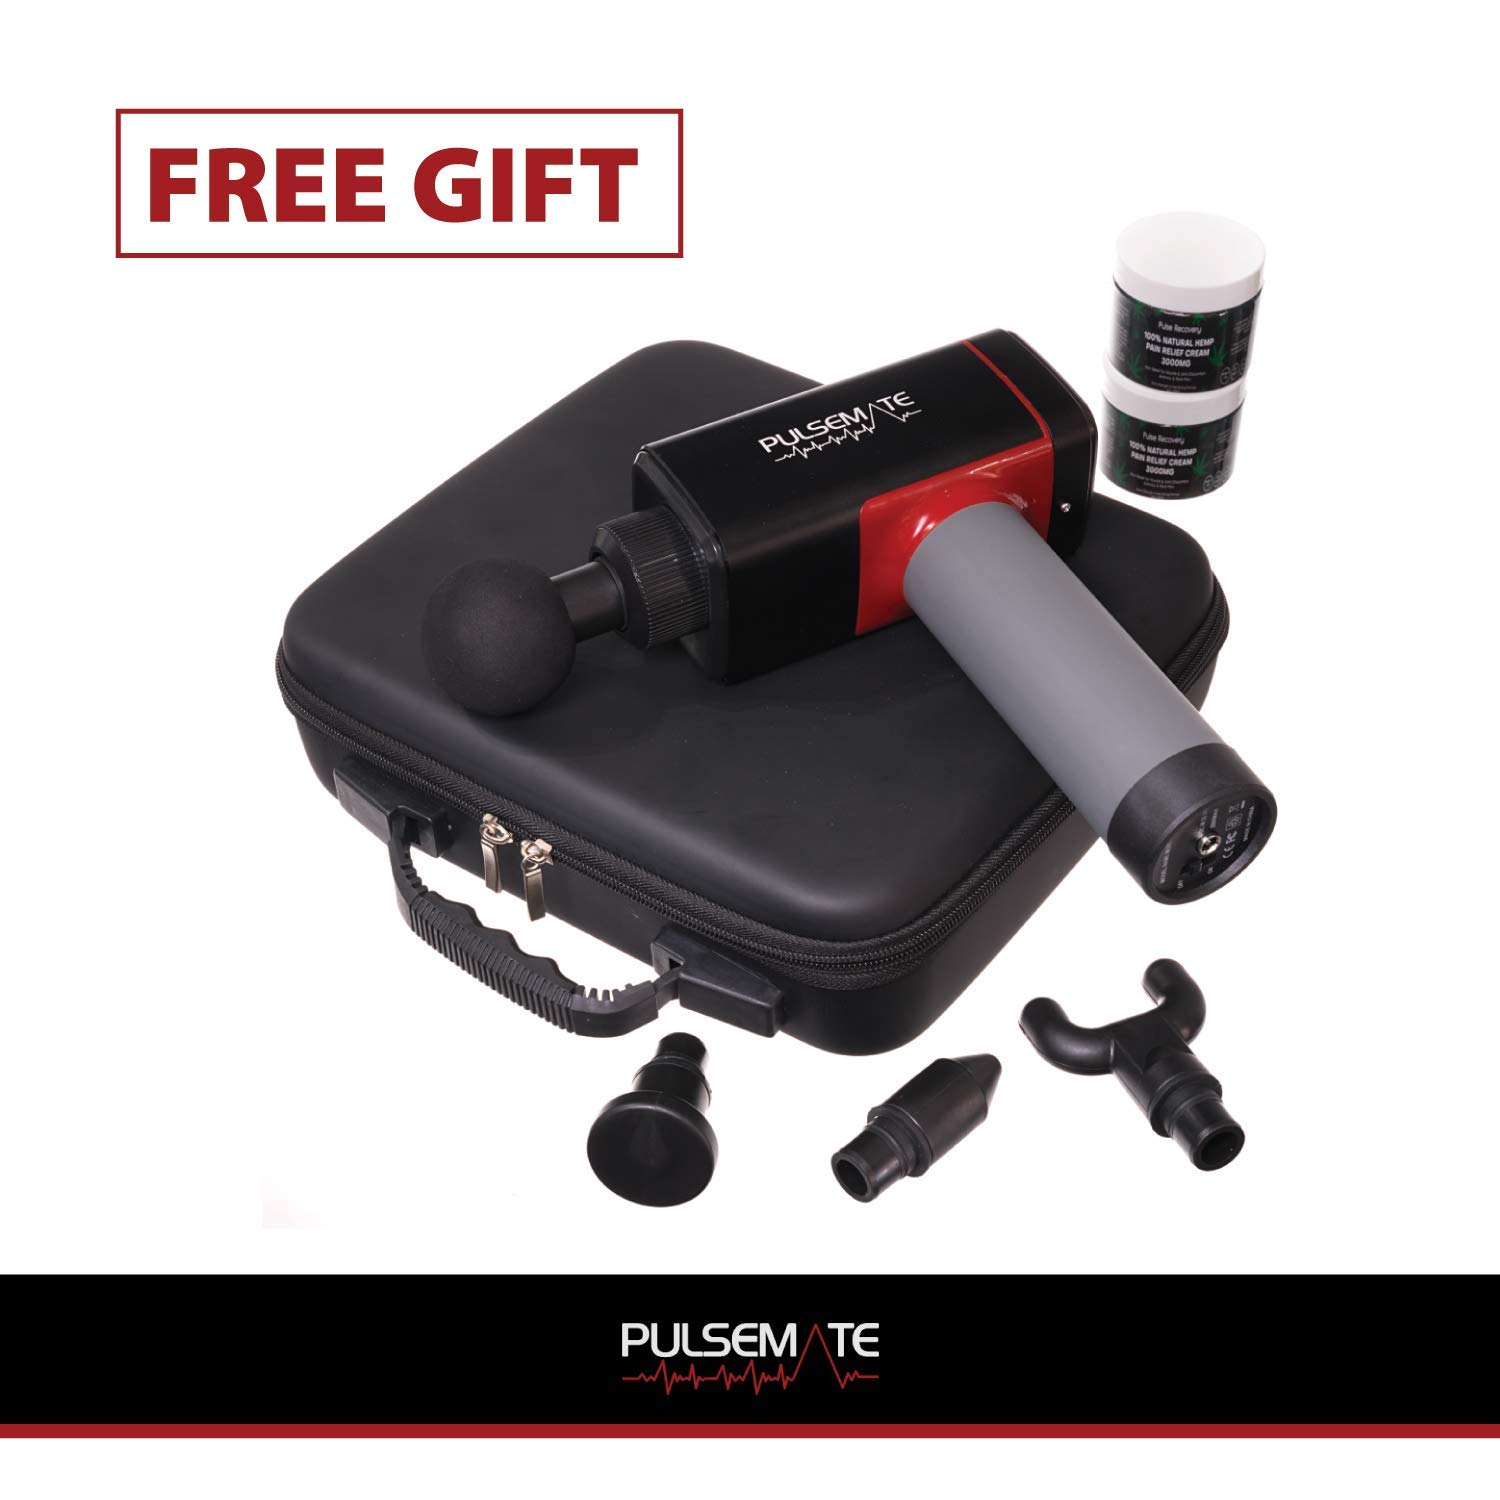 Massage Gun – PULSEMATE Quiet Technology – Professional Deep Tissue Massager for Muscle Tension Relief with 4 Variable Speeds Custom Travel Case Included